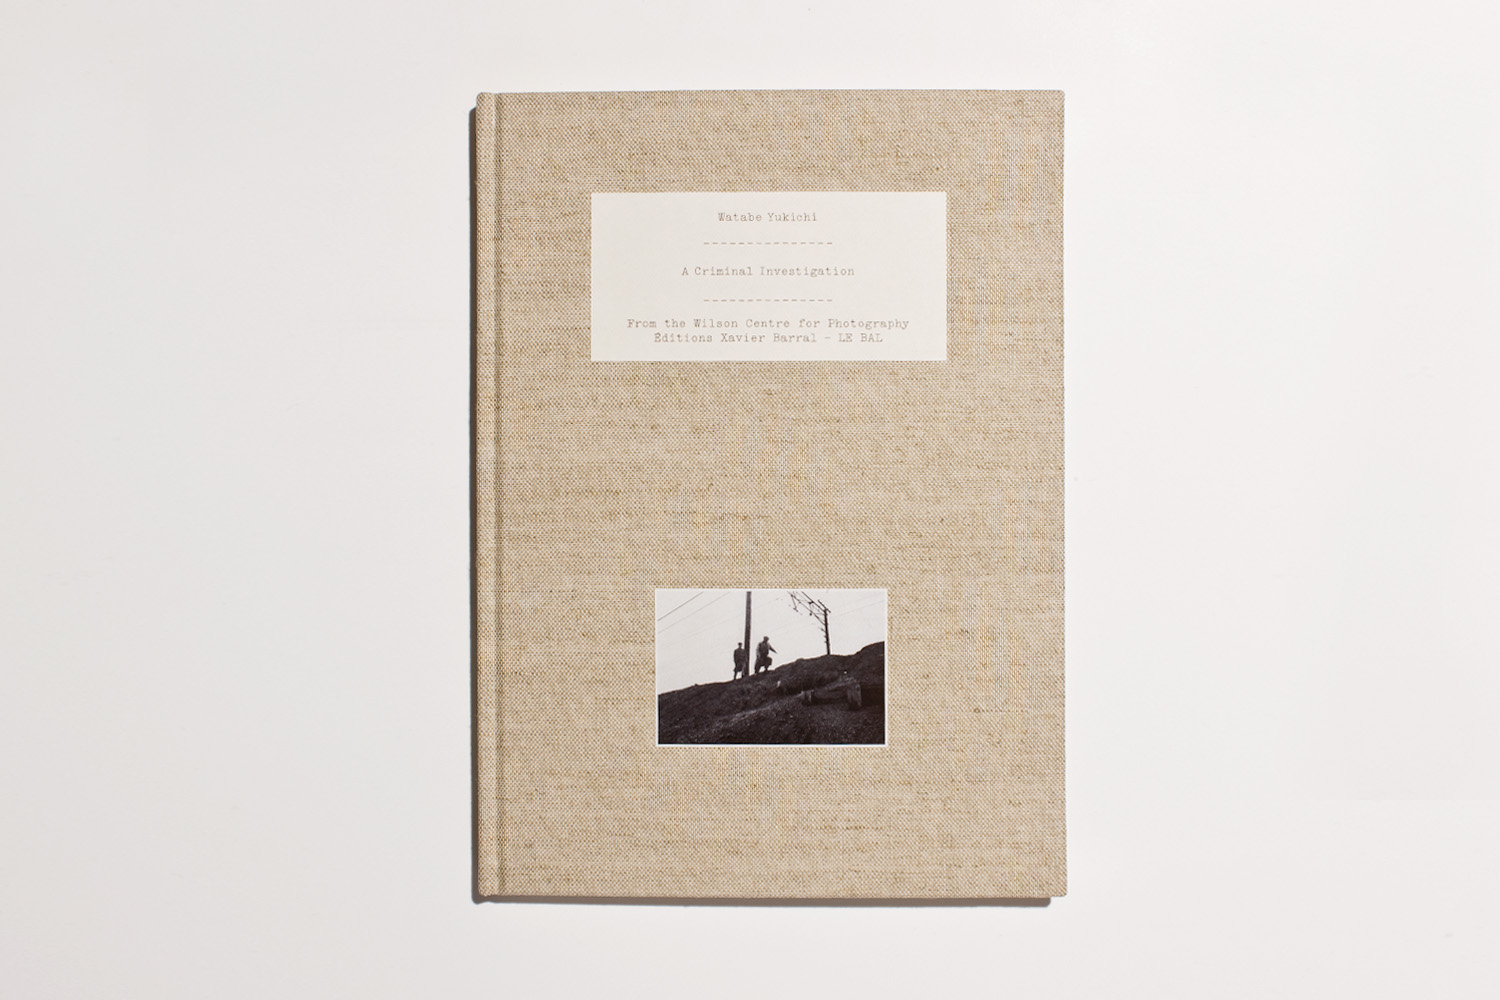 A Criminal Investigation by Watabe Yukichi, selected by Alec Soth, photographer and publisher of Little Brown Mushroom